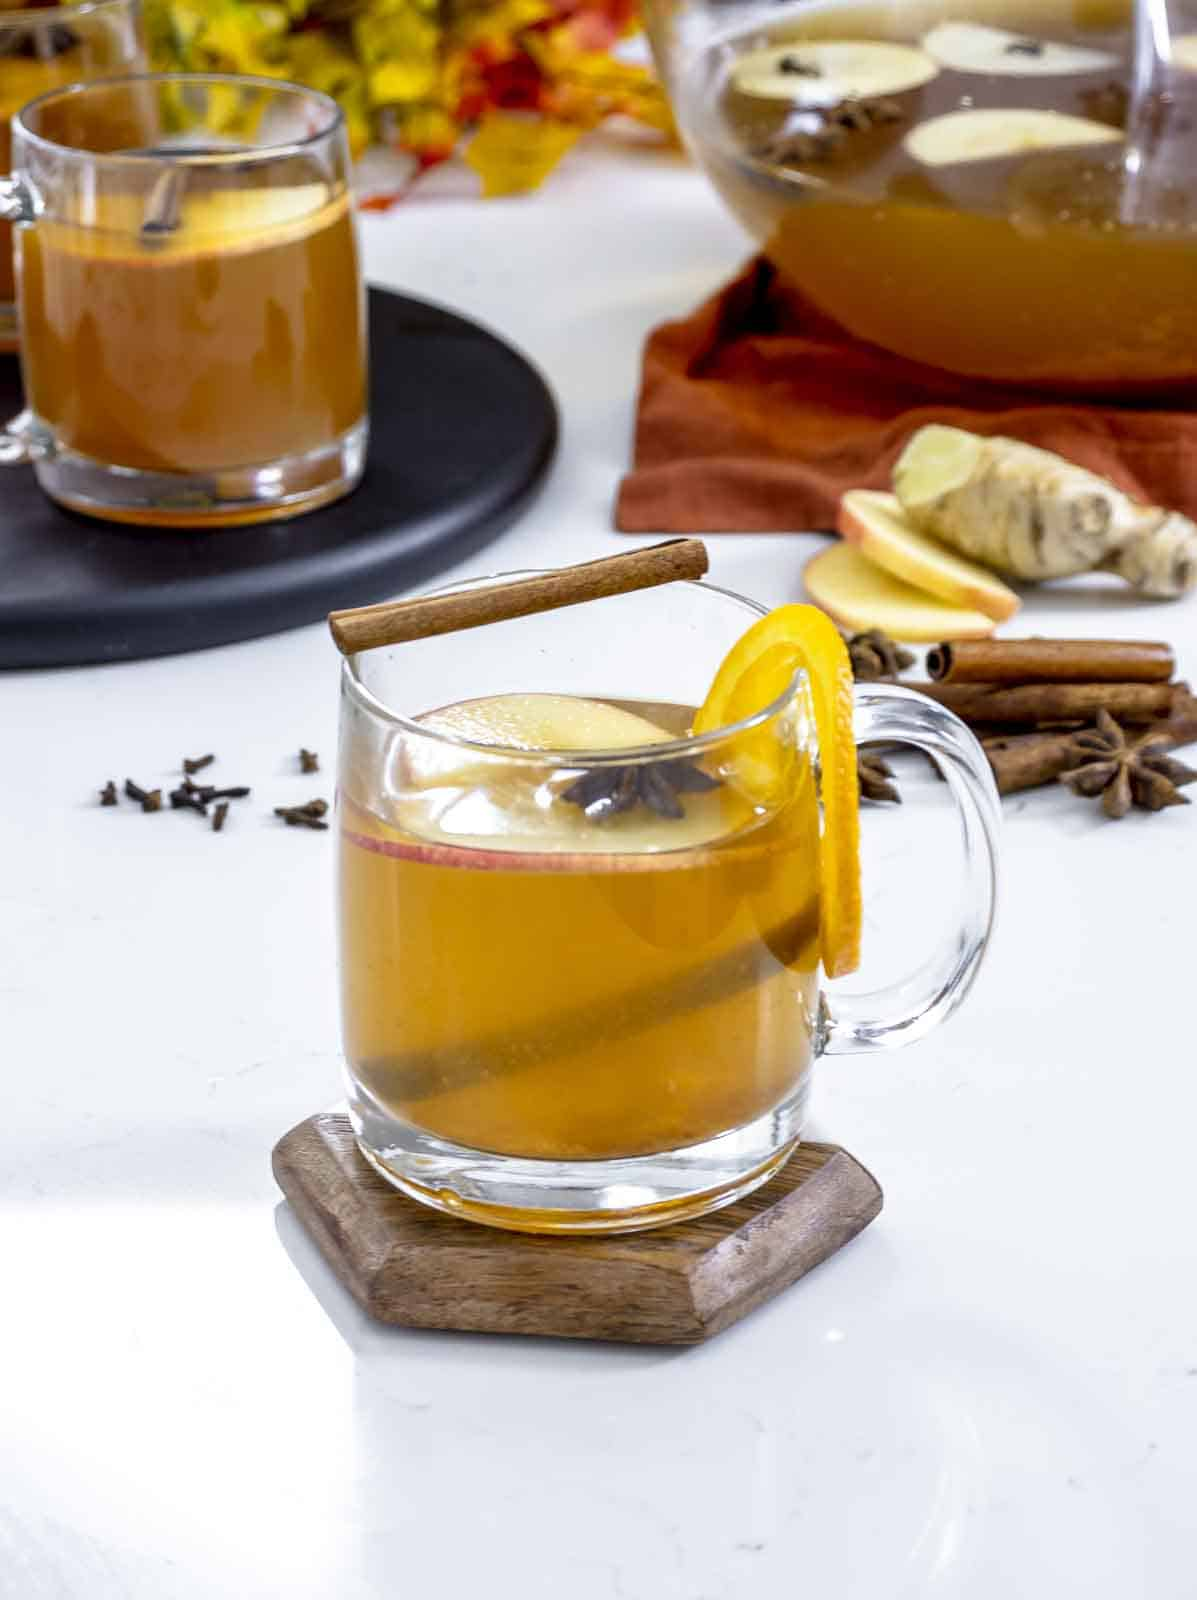 Hot mulled apple cider in a clear mug garnished with orange and cloves and spiked with rum.